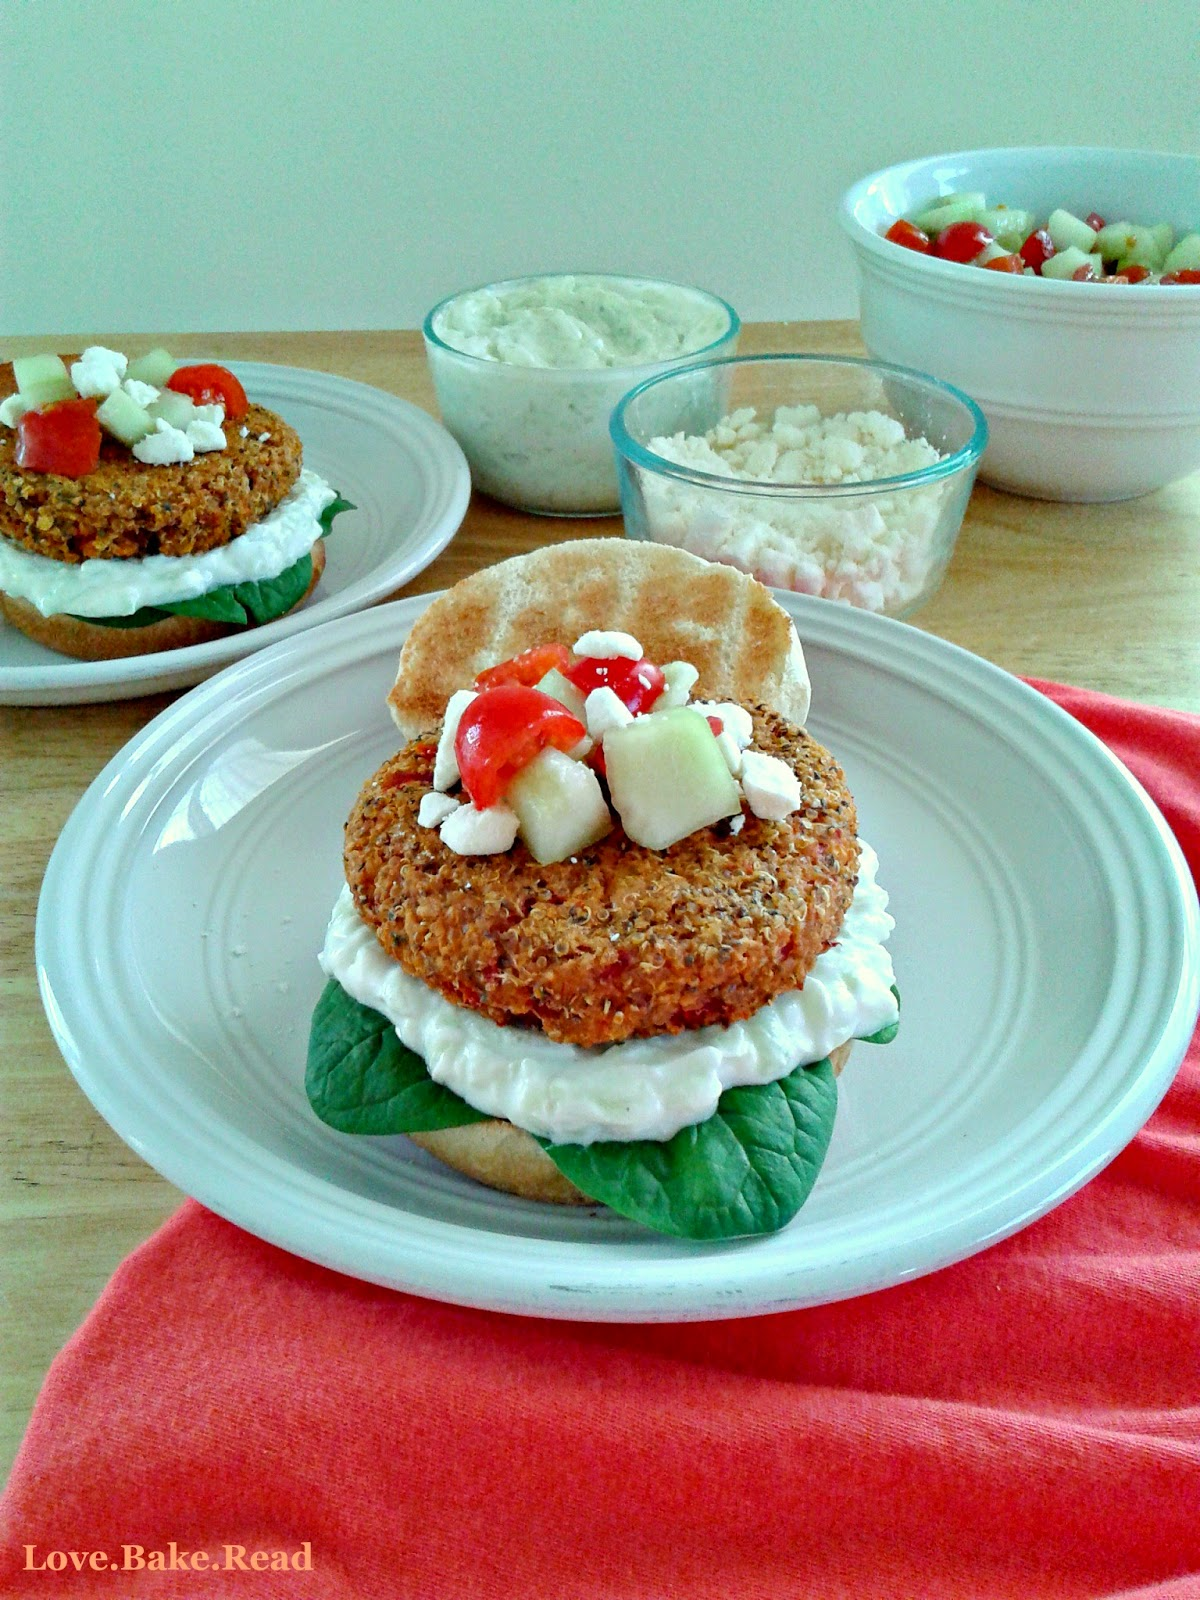 Roasted Red Pepper Chickpea Burgers     Love.Bake.Read